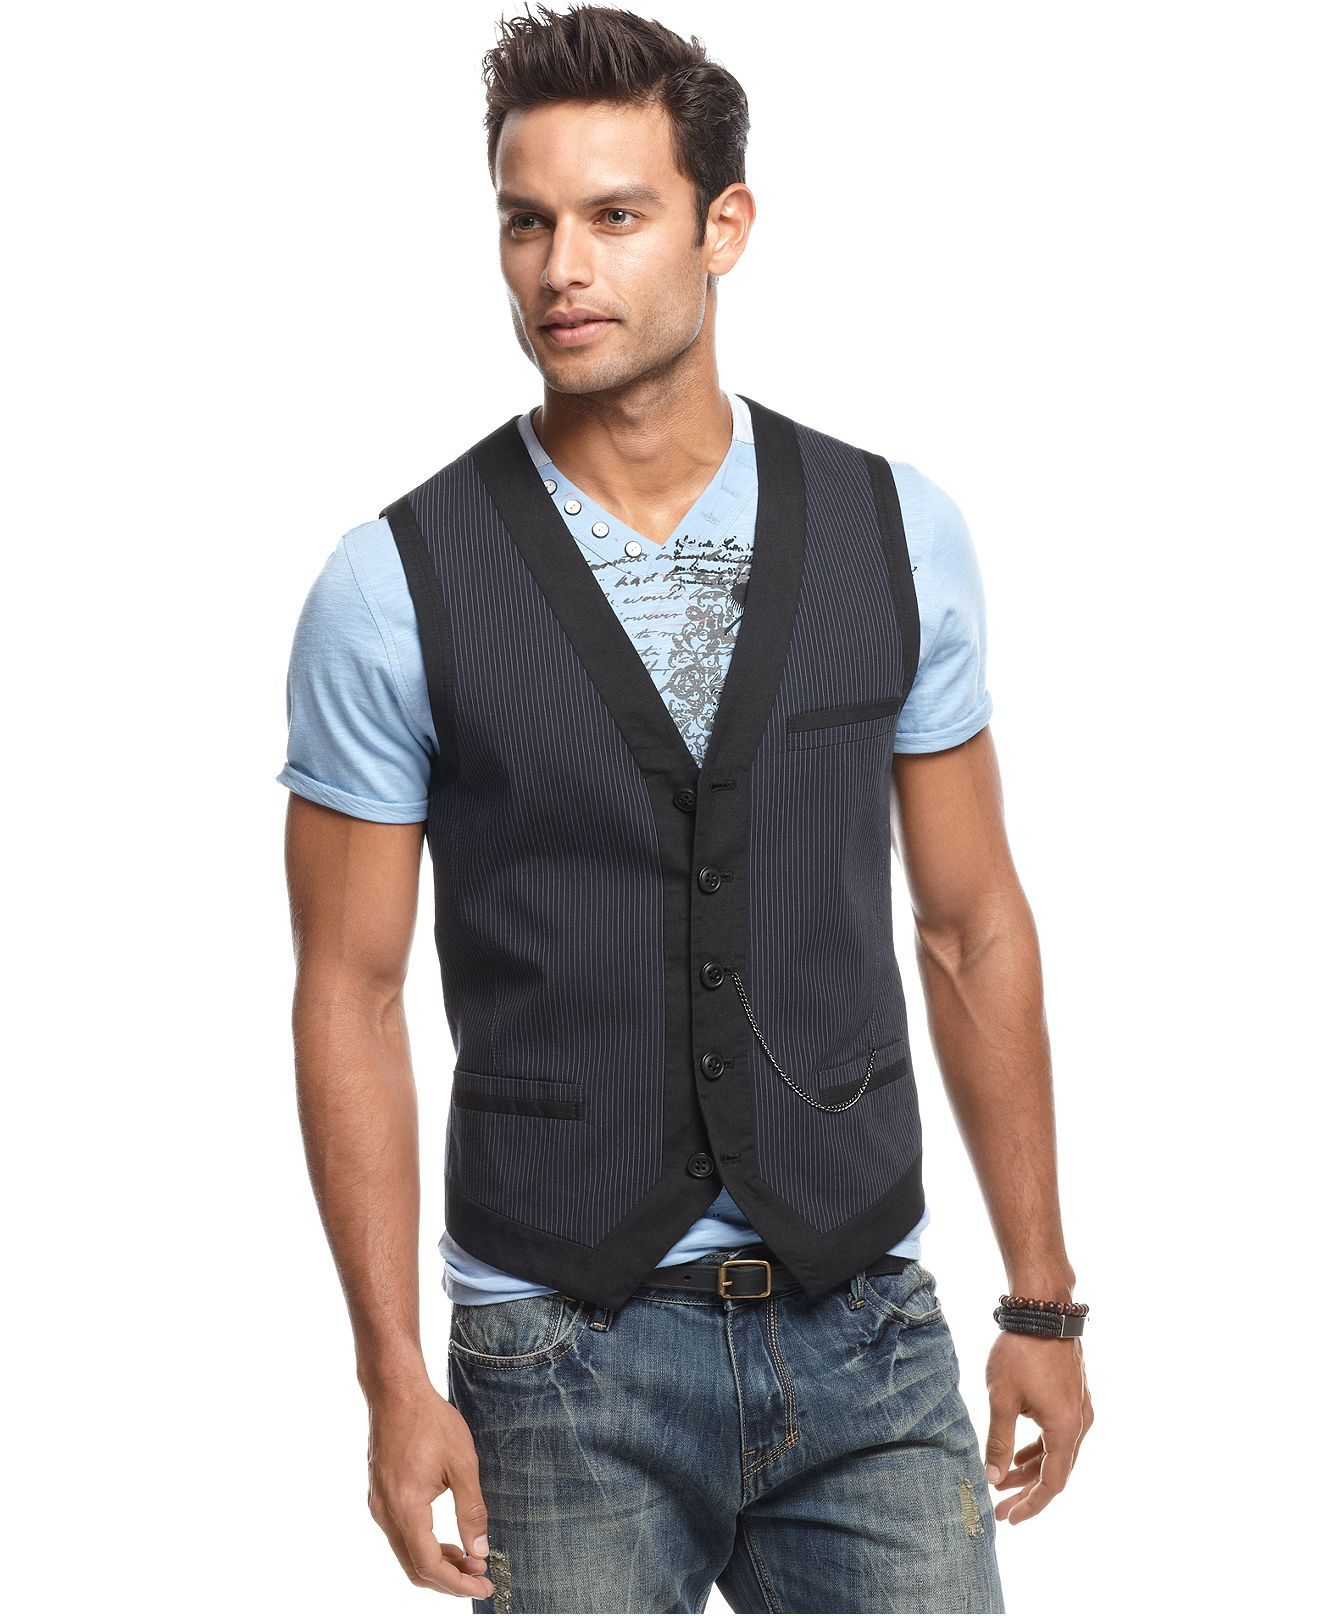 INC International Concepts Vests, Pinstripe Vest - Mens Blazers ...